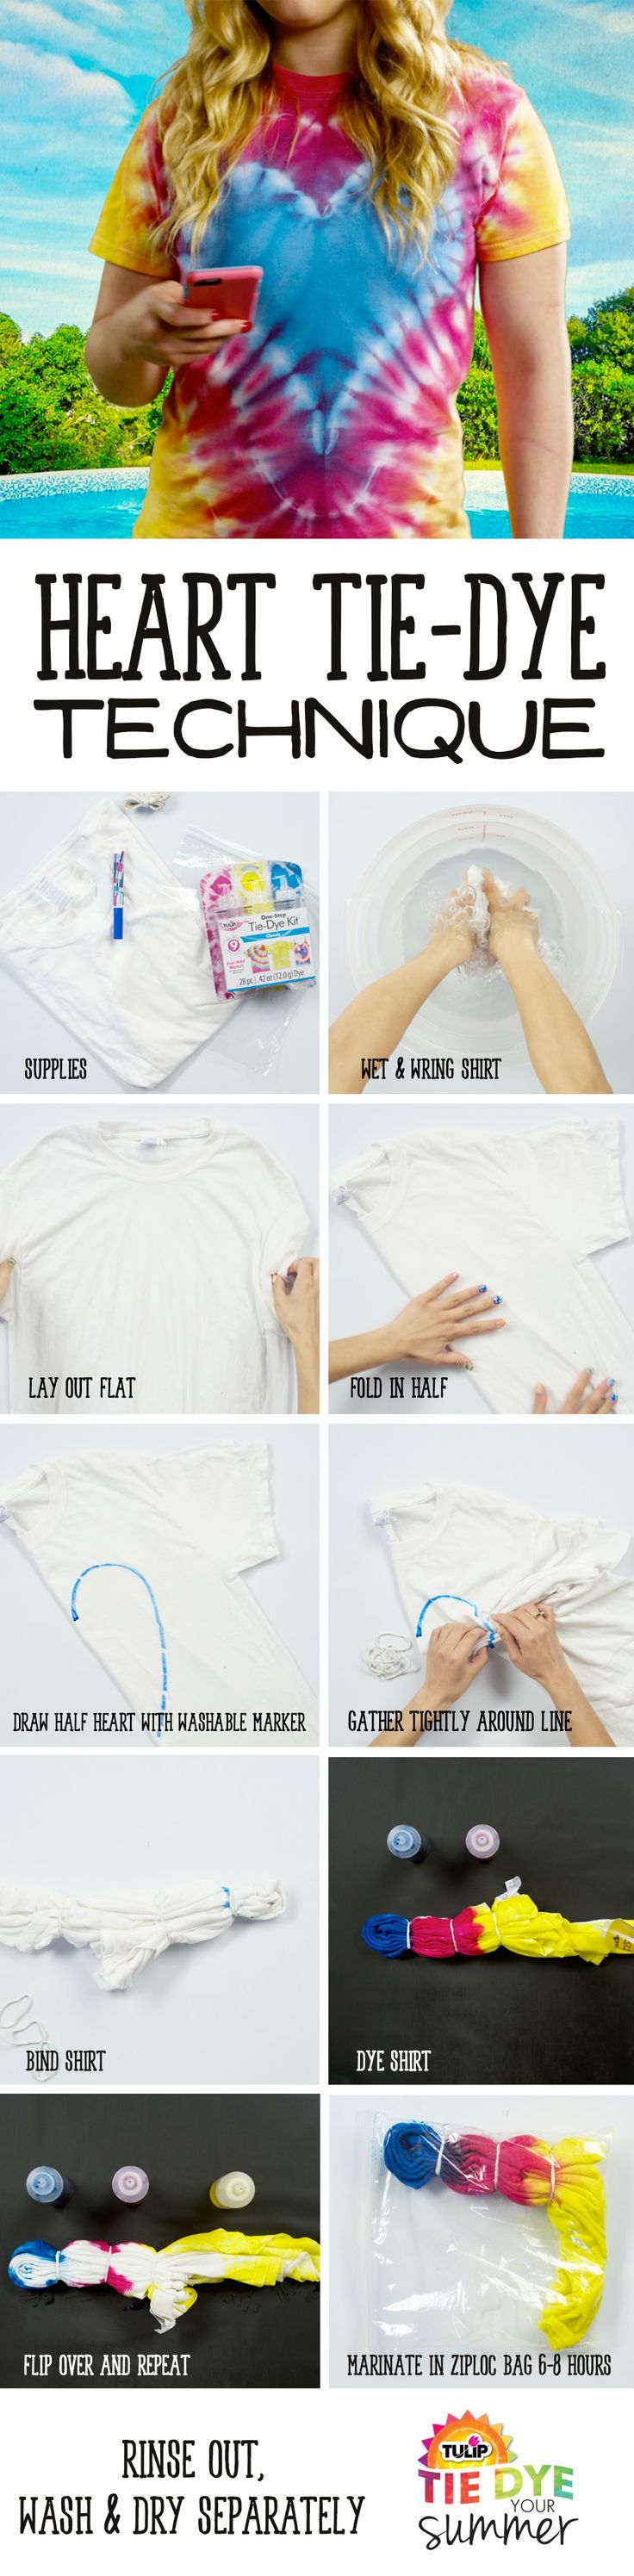 Best 25+ Tie dye shirts ideas on Pinterest | Diy tie dye shirts ...